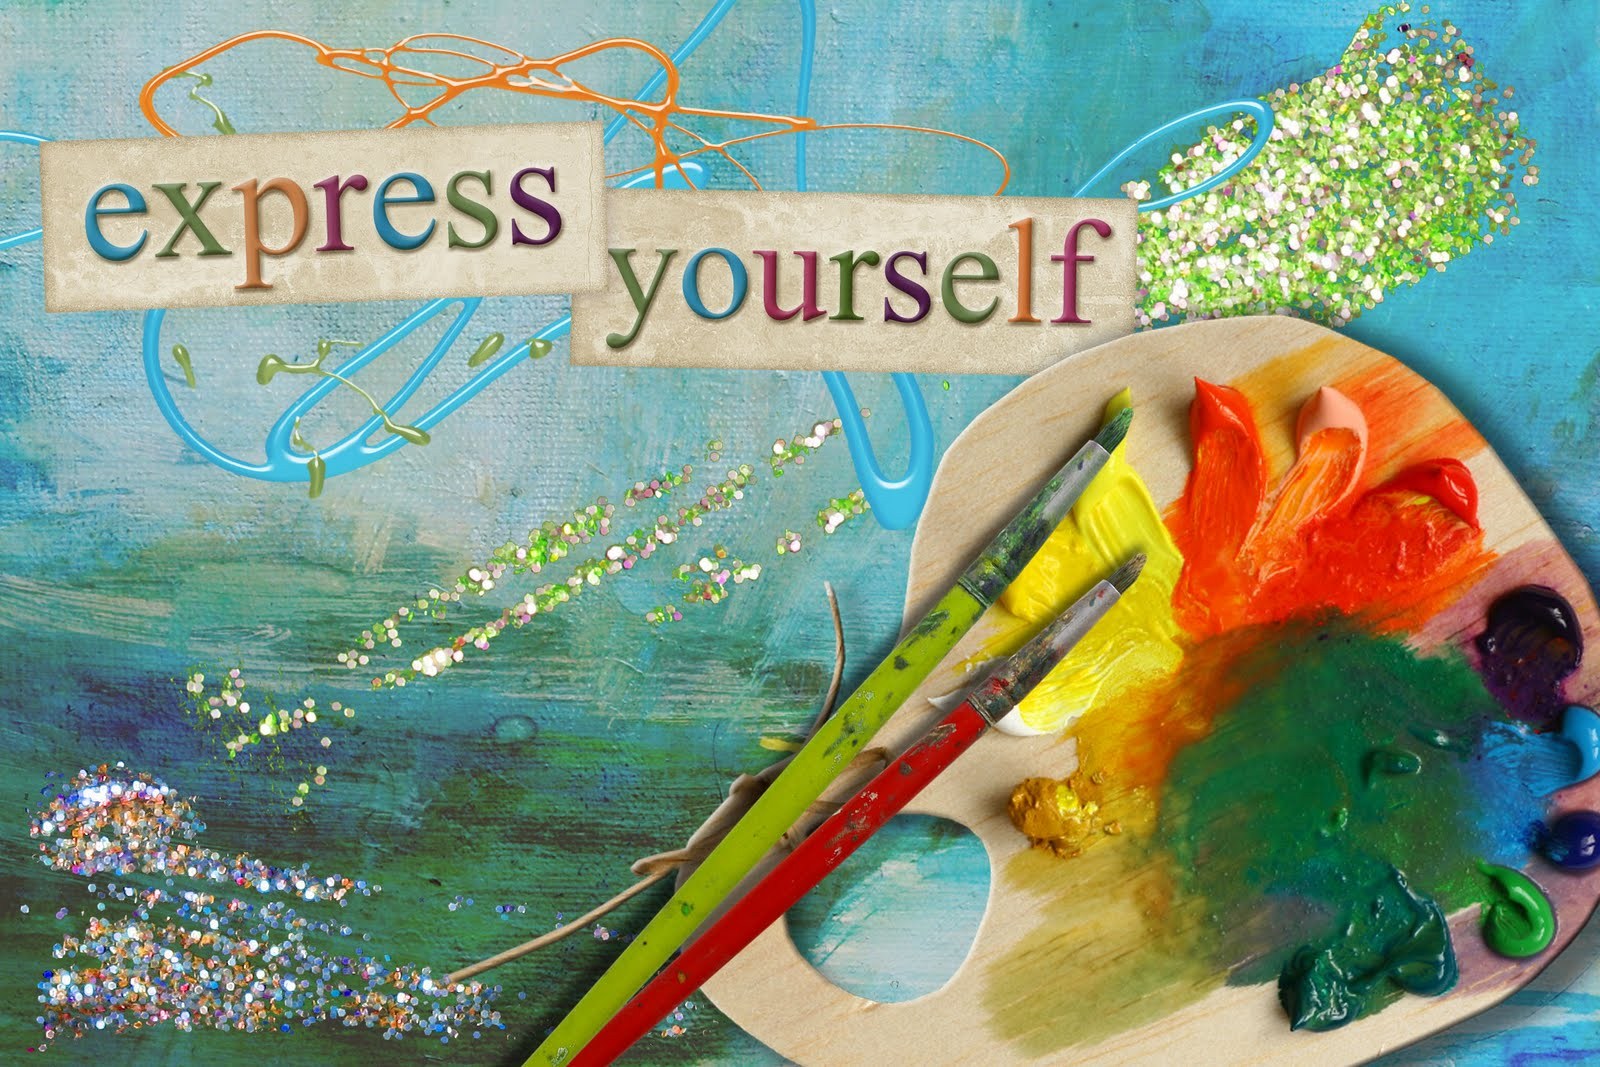 art as the freedom to express inner self Now what you've probably noticed how telling your critical inner voice to shut  up, only makes it louder  an online journey to reconnect with your authentic,  creative self using art journaling  feel the freedom to authentically express  yourself.